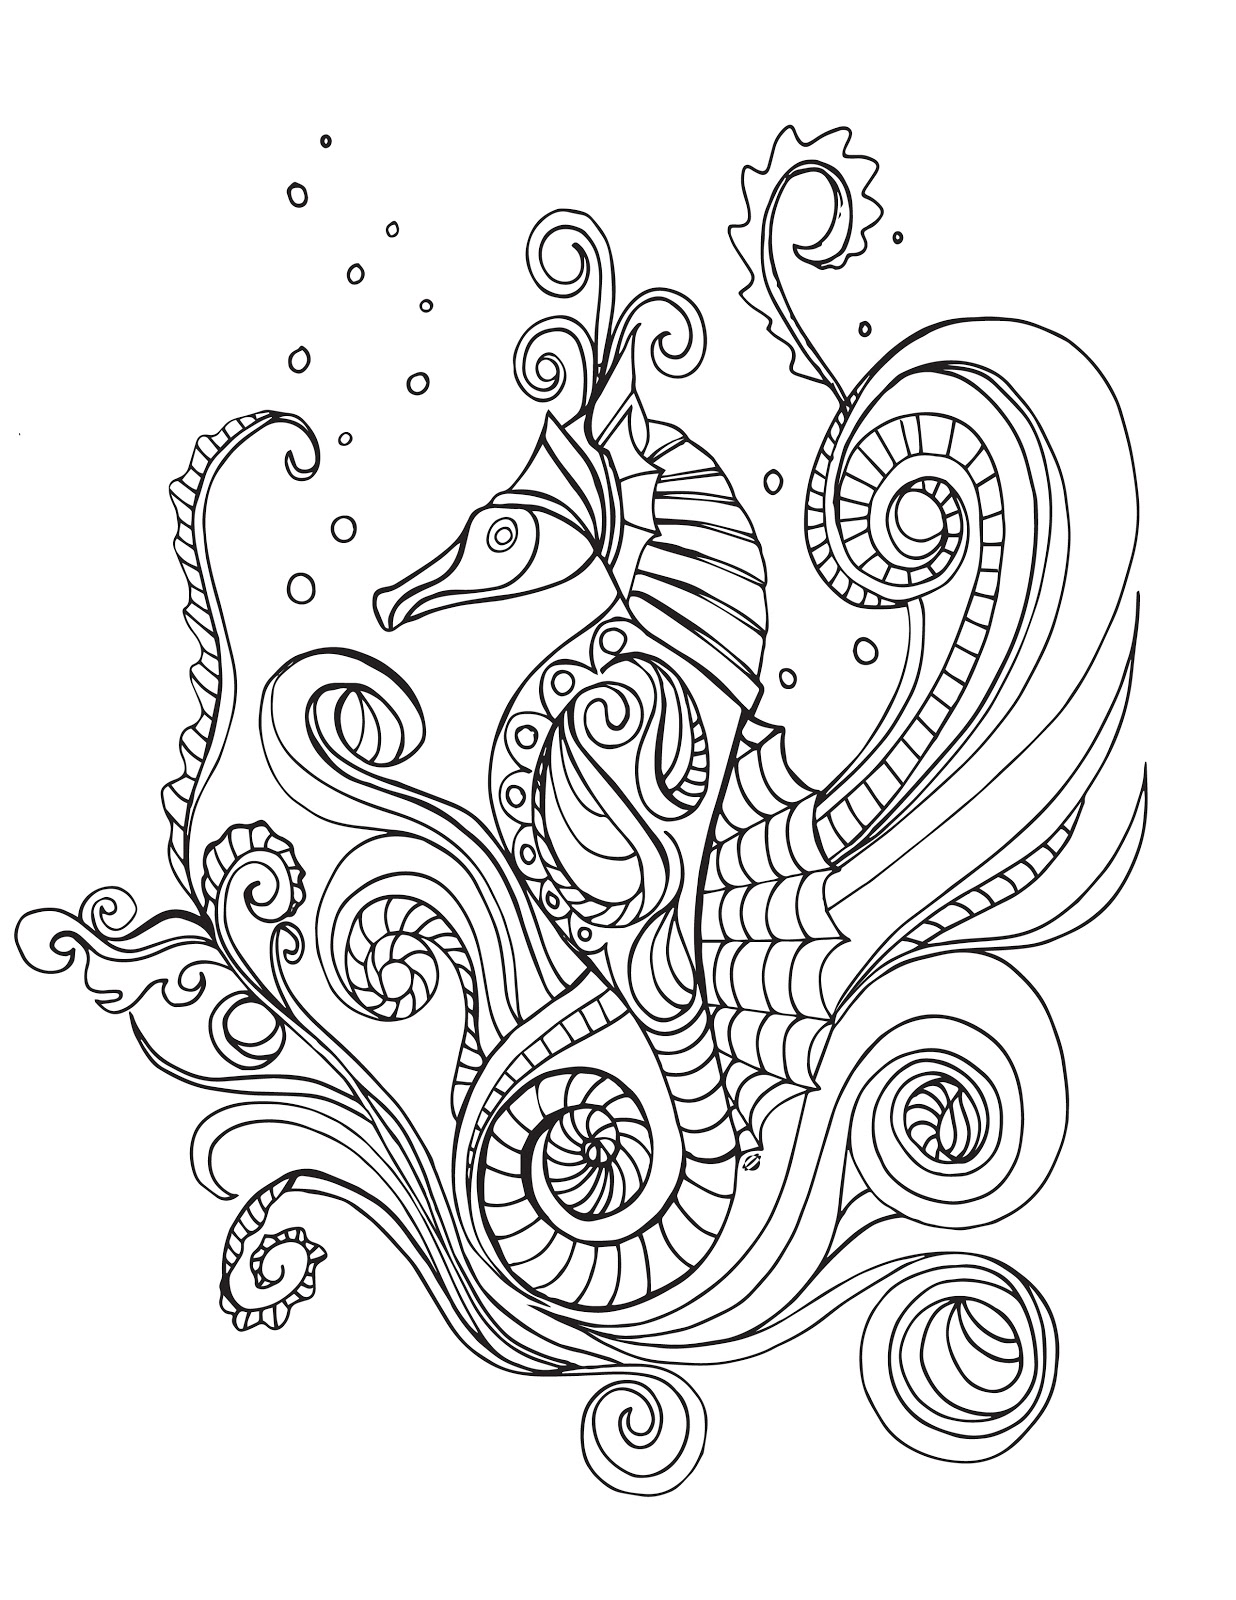 Coloring Pages For Grown Ups Pdf : Free grown up coloring pages